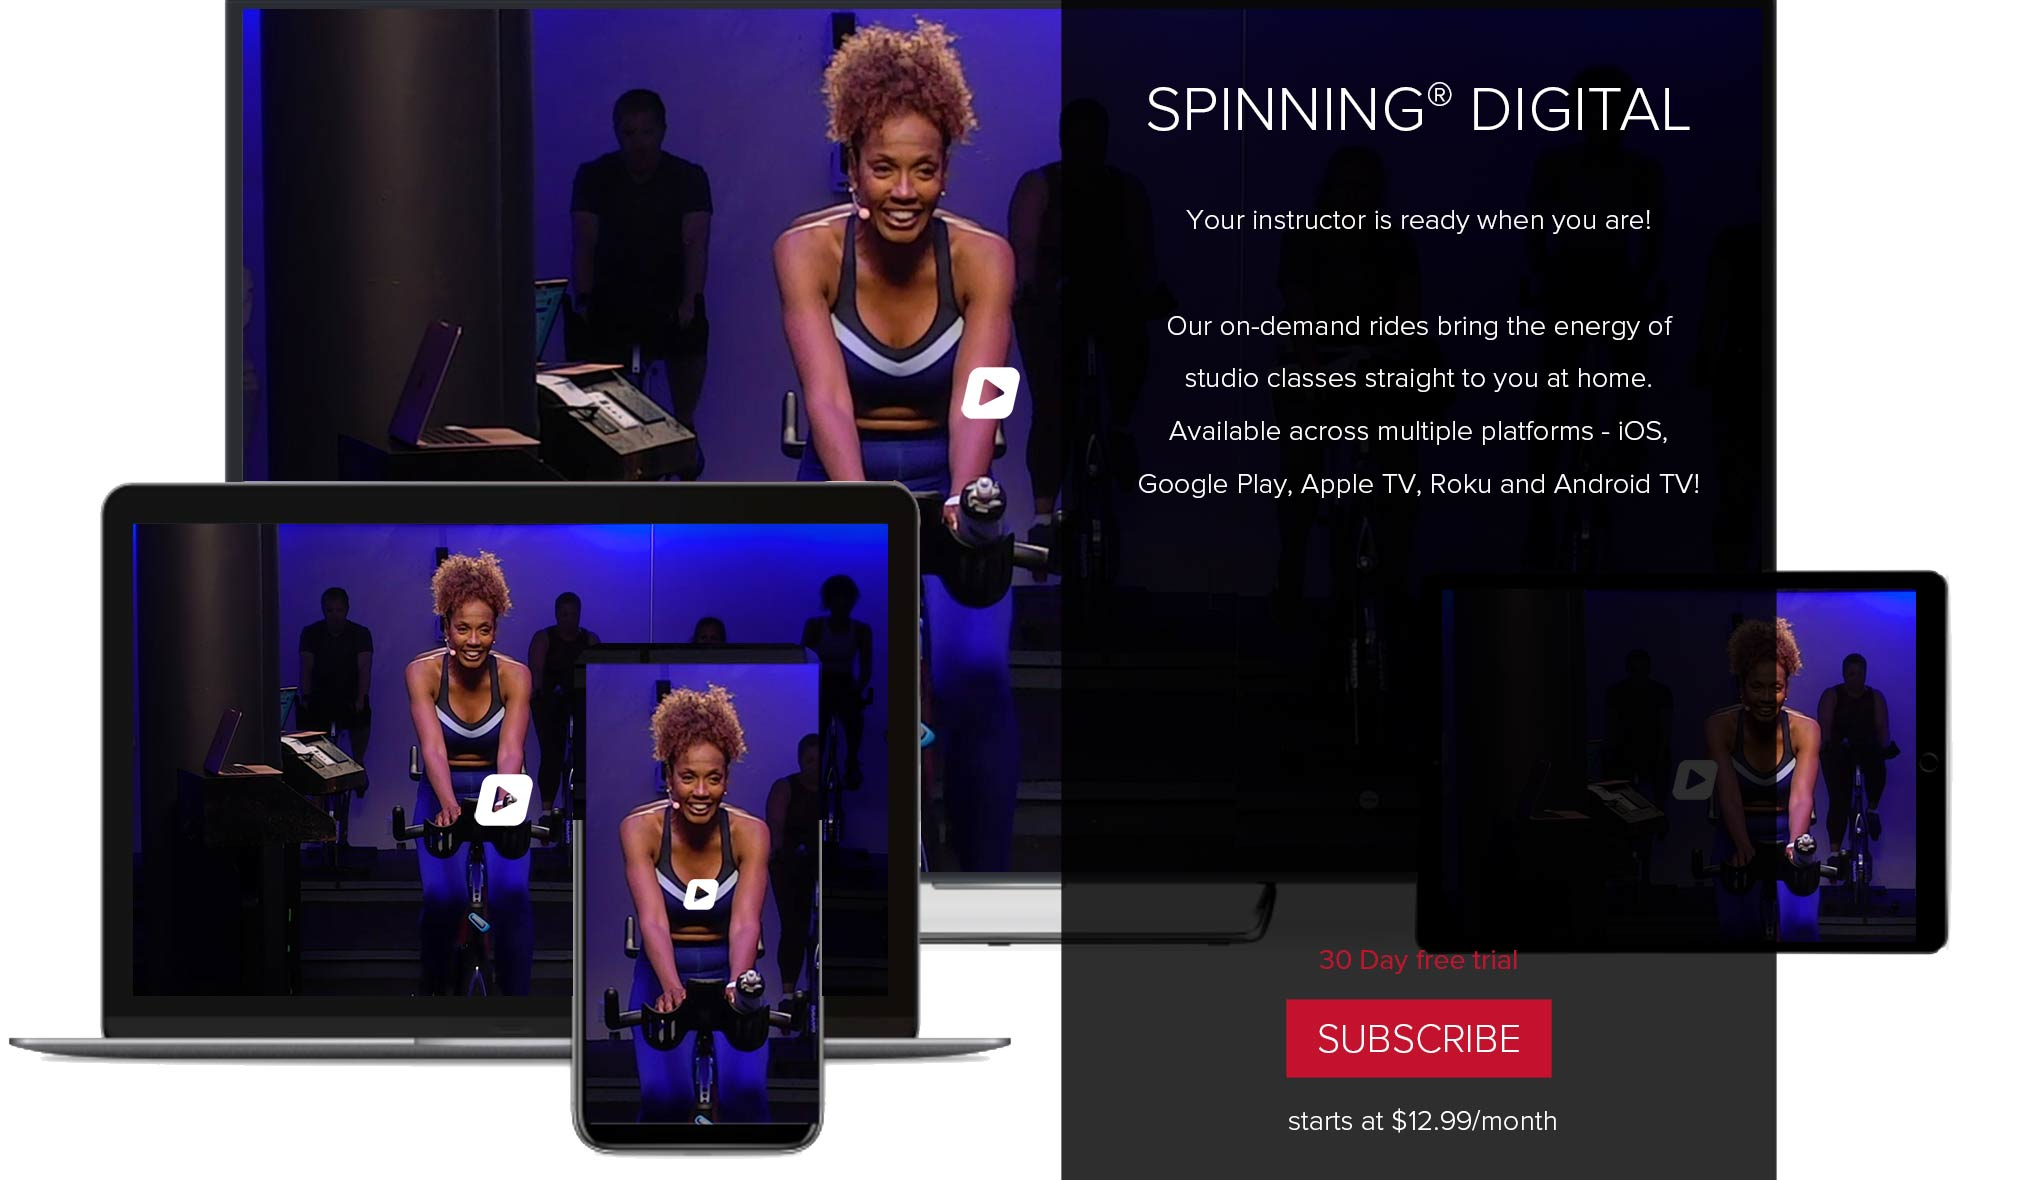 Spinning® Digital. Your instructor is ready when you are! Our on-demand rides bring the energy of home studio classes straight to you at home. Available across multiple platform - iOS, Google Play, Apple TV, Roku and Android TV! 30 Day free trial. Subscribe. $12.99/month